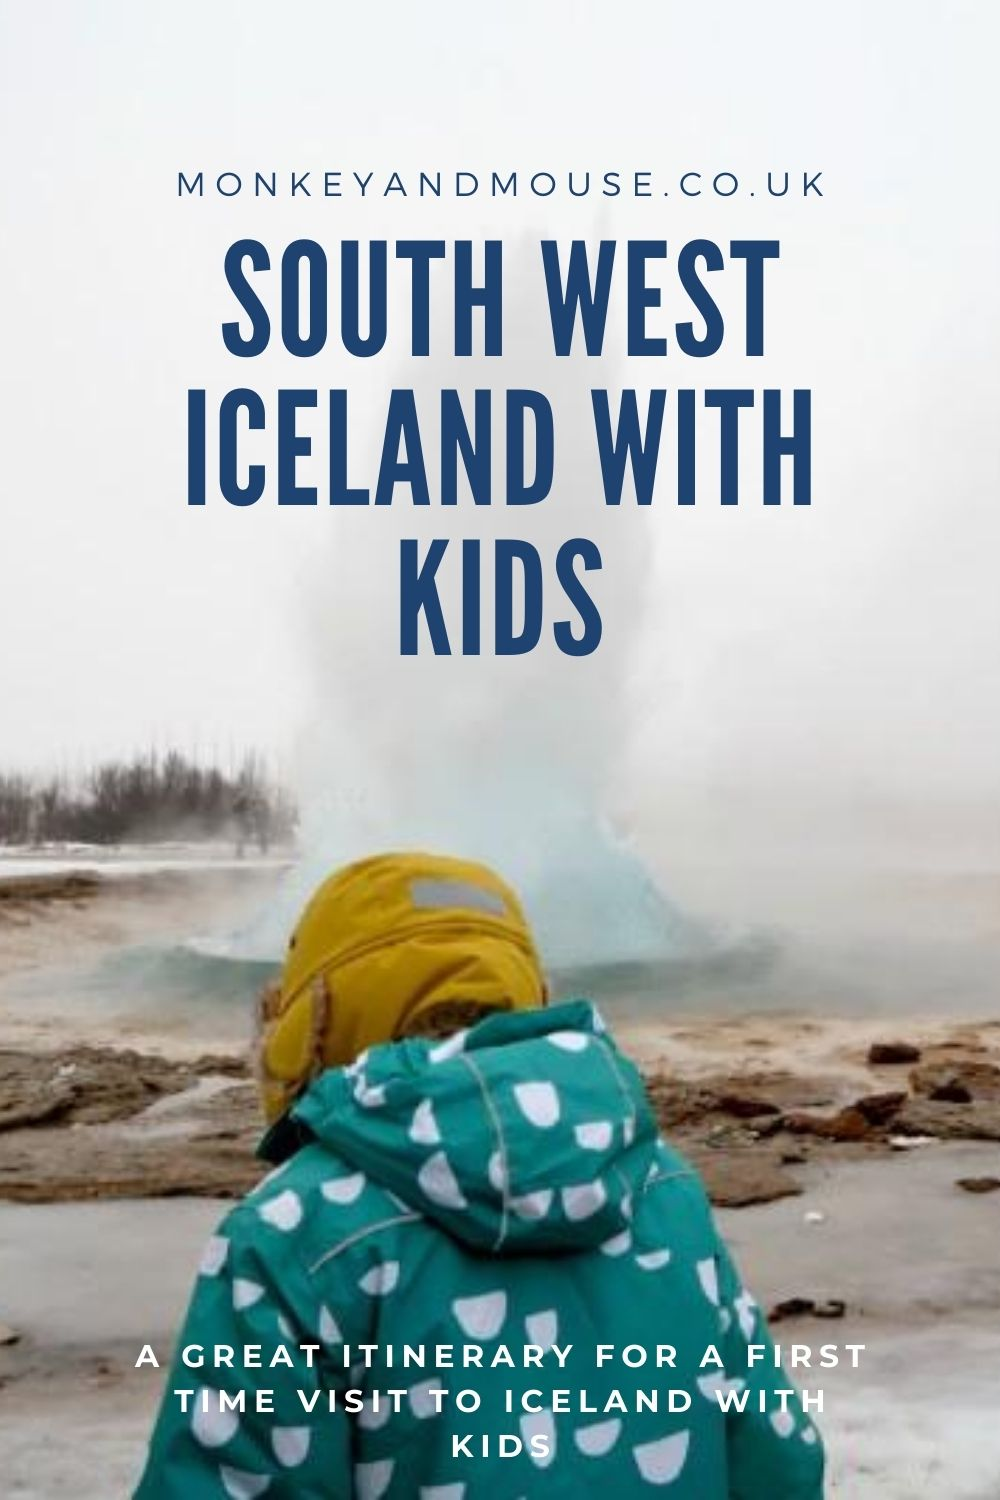 South West Iceland itinerary